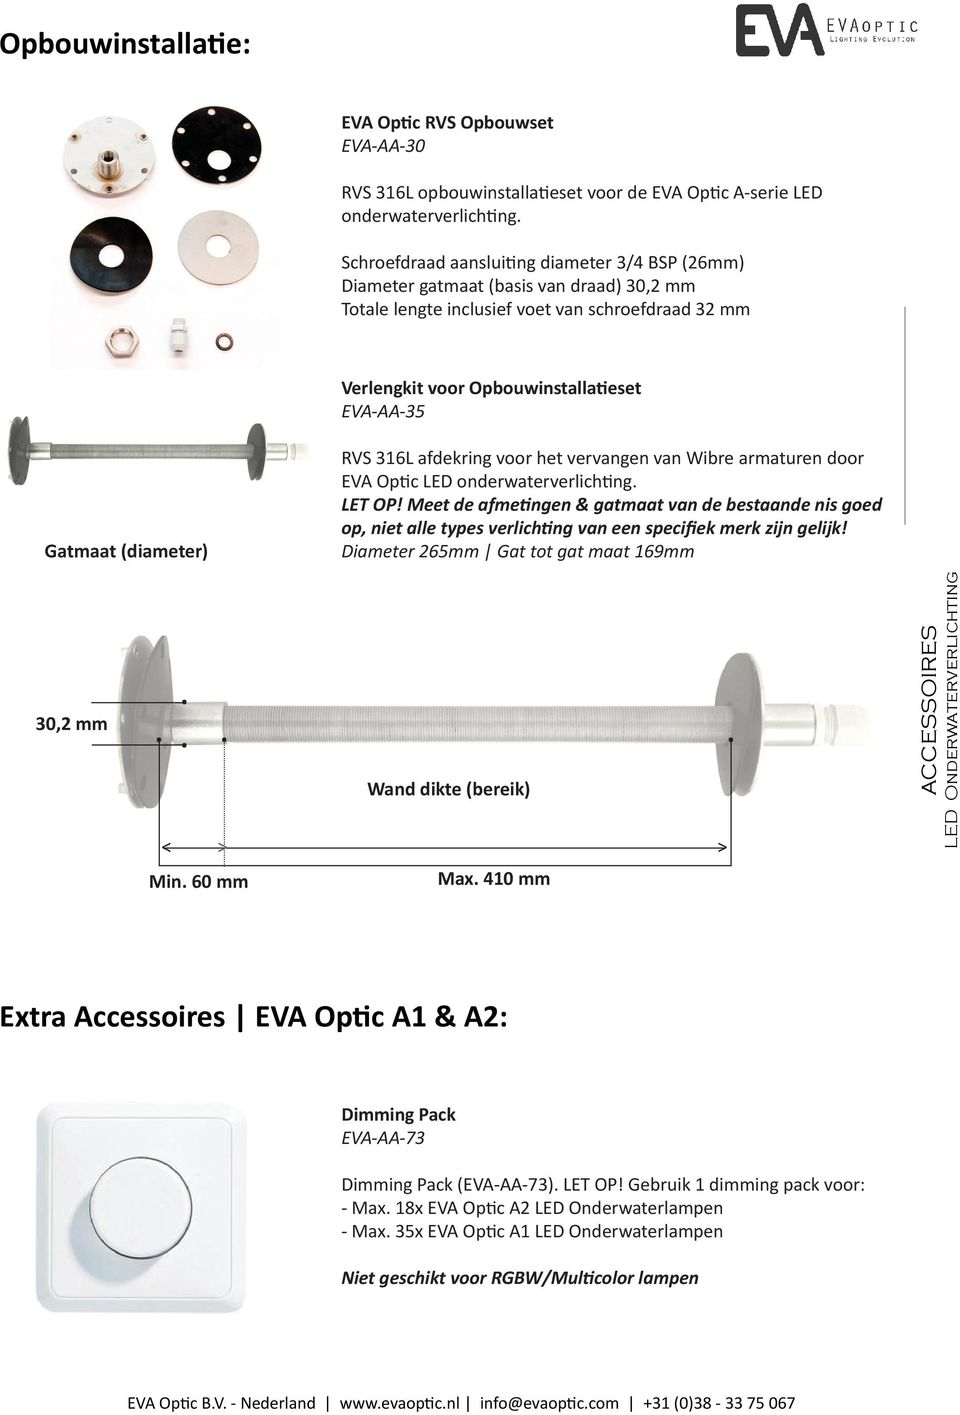 Diameter 265mm Gat tot gat maat 169mm 30,2 mm Wand dikte (bereik) < > > Min 60 mm Max 410 mm Extra Accessoires EVA Optic A1 & A2: Dimming Pack EVA-AA-73 Dimming Pack